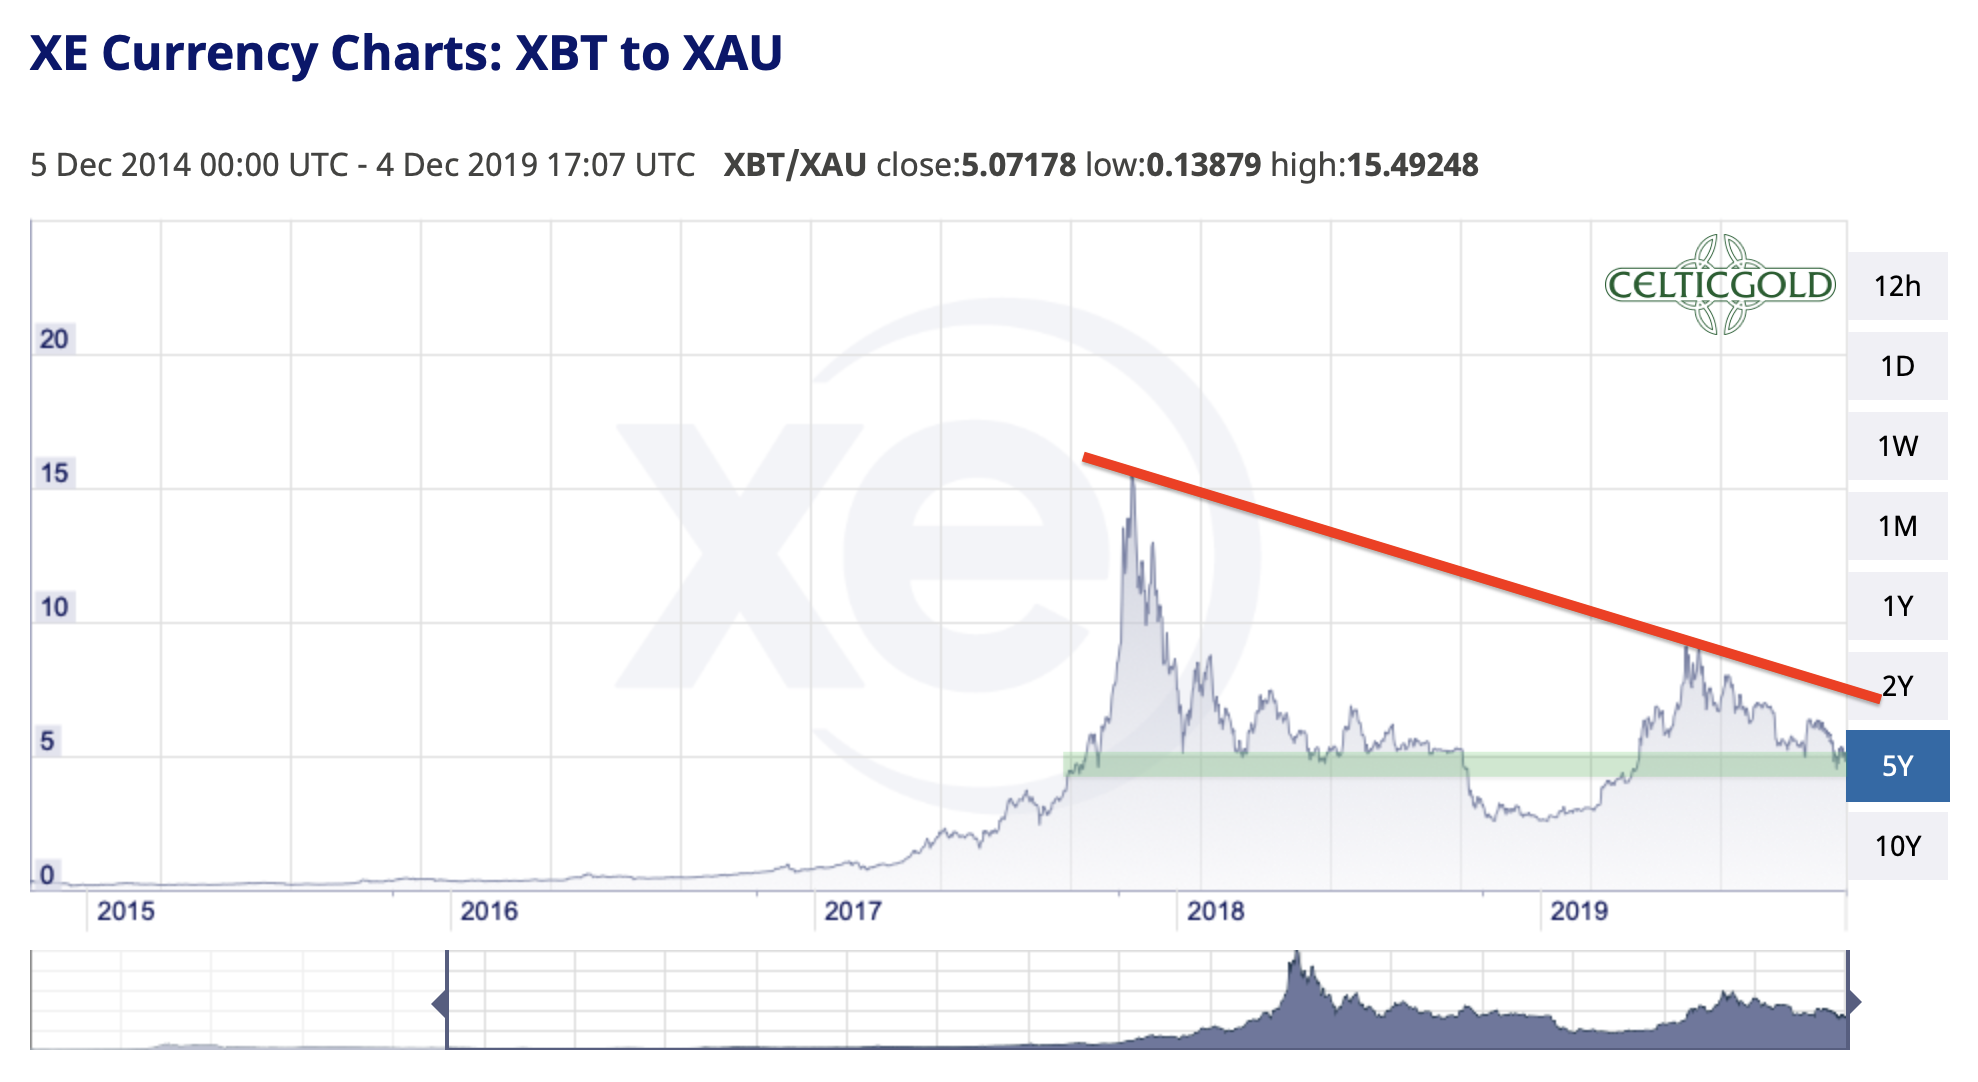 Bitcoin in Gold as of December 5th, 2019. Source: XE